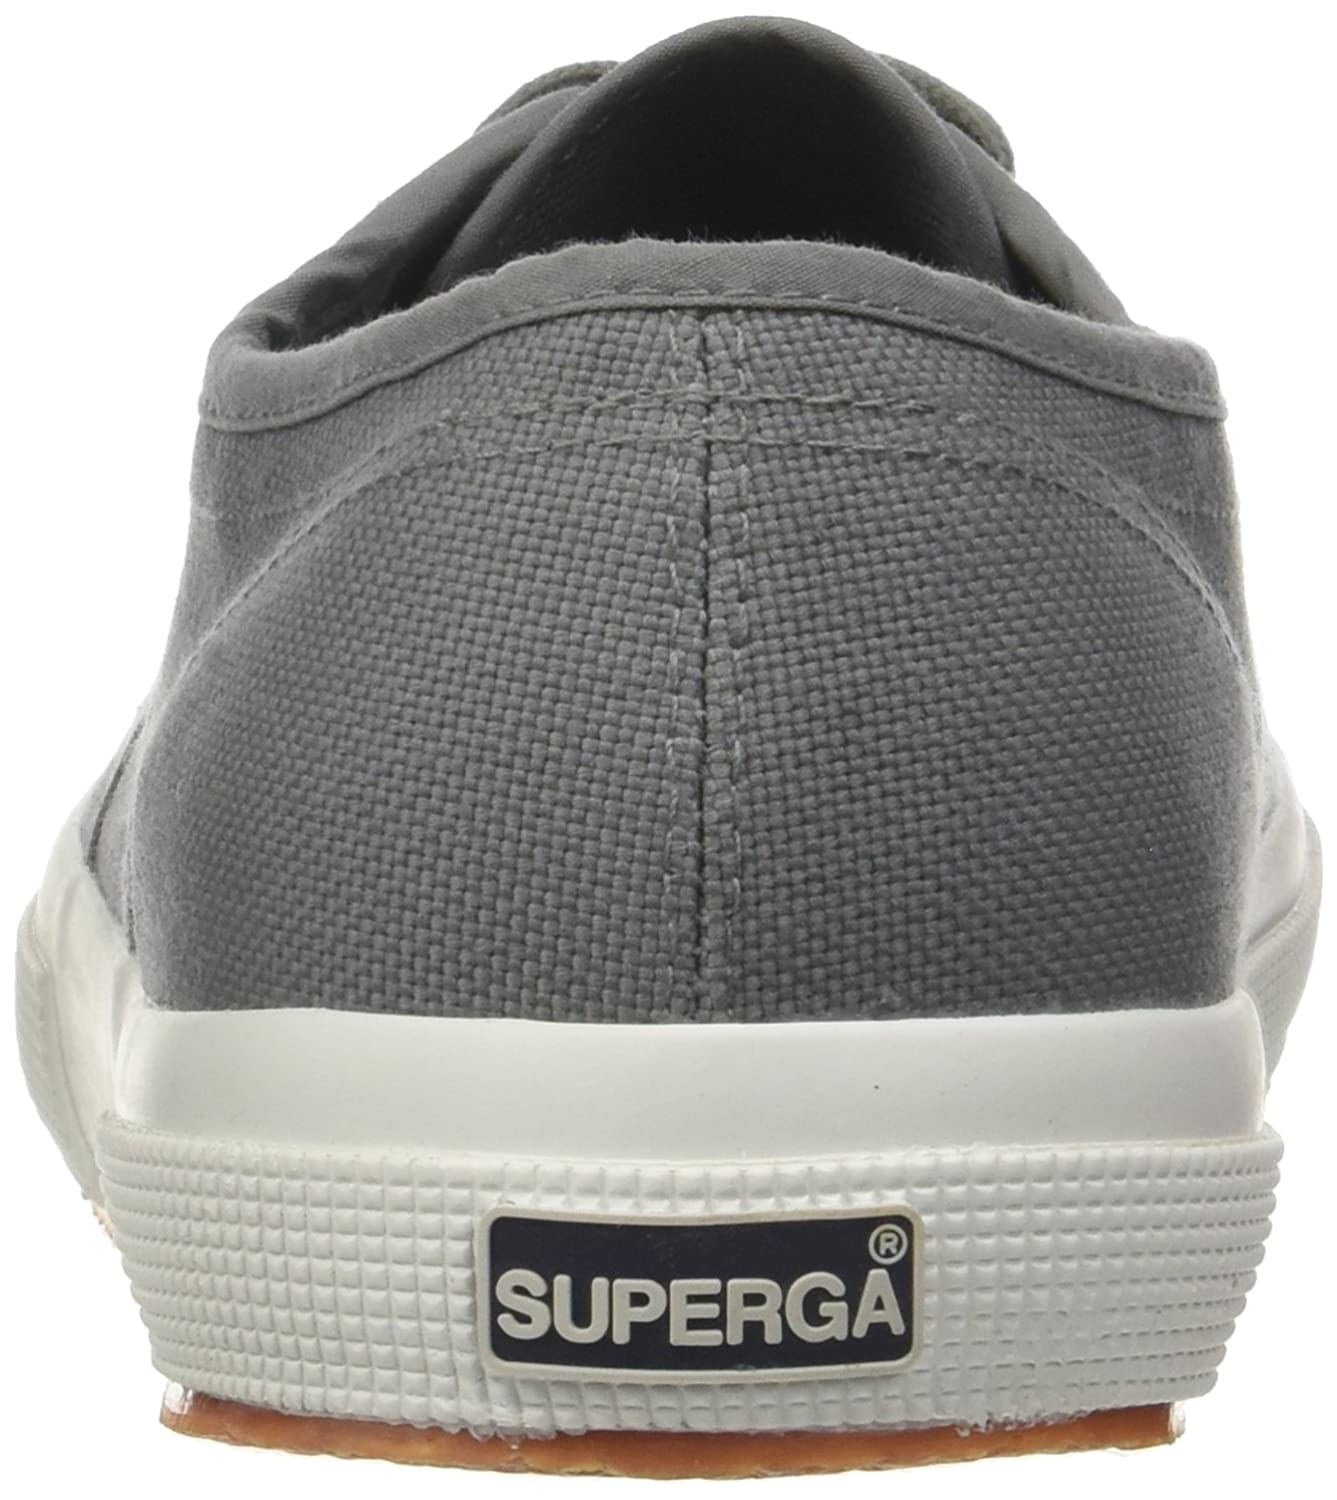 Superga Women's 2750 Cotu Sneaker B00OKNBPZM UK5.5 EU39 US8|grey sage